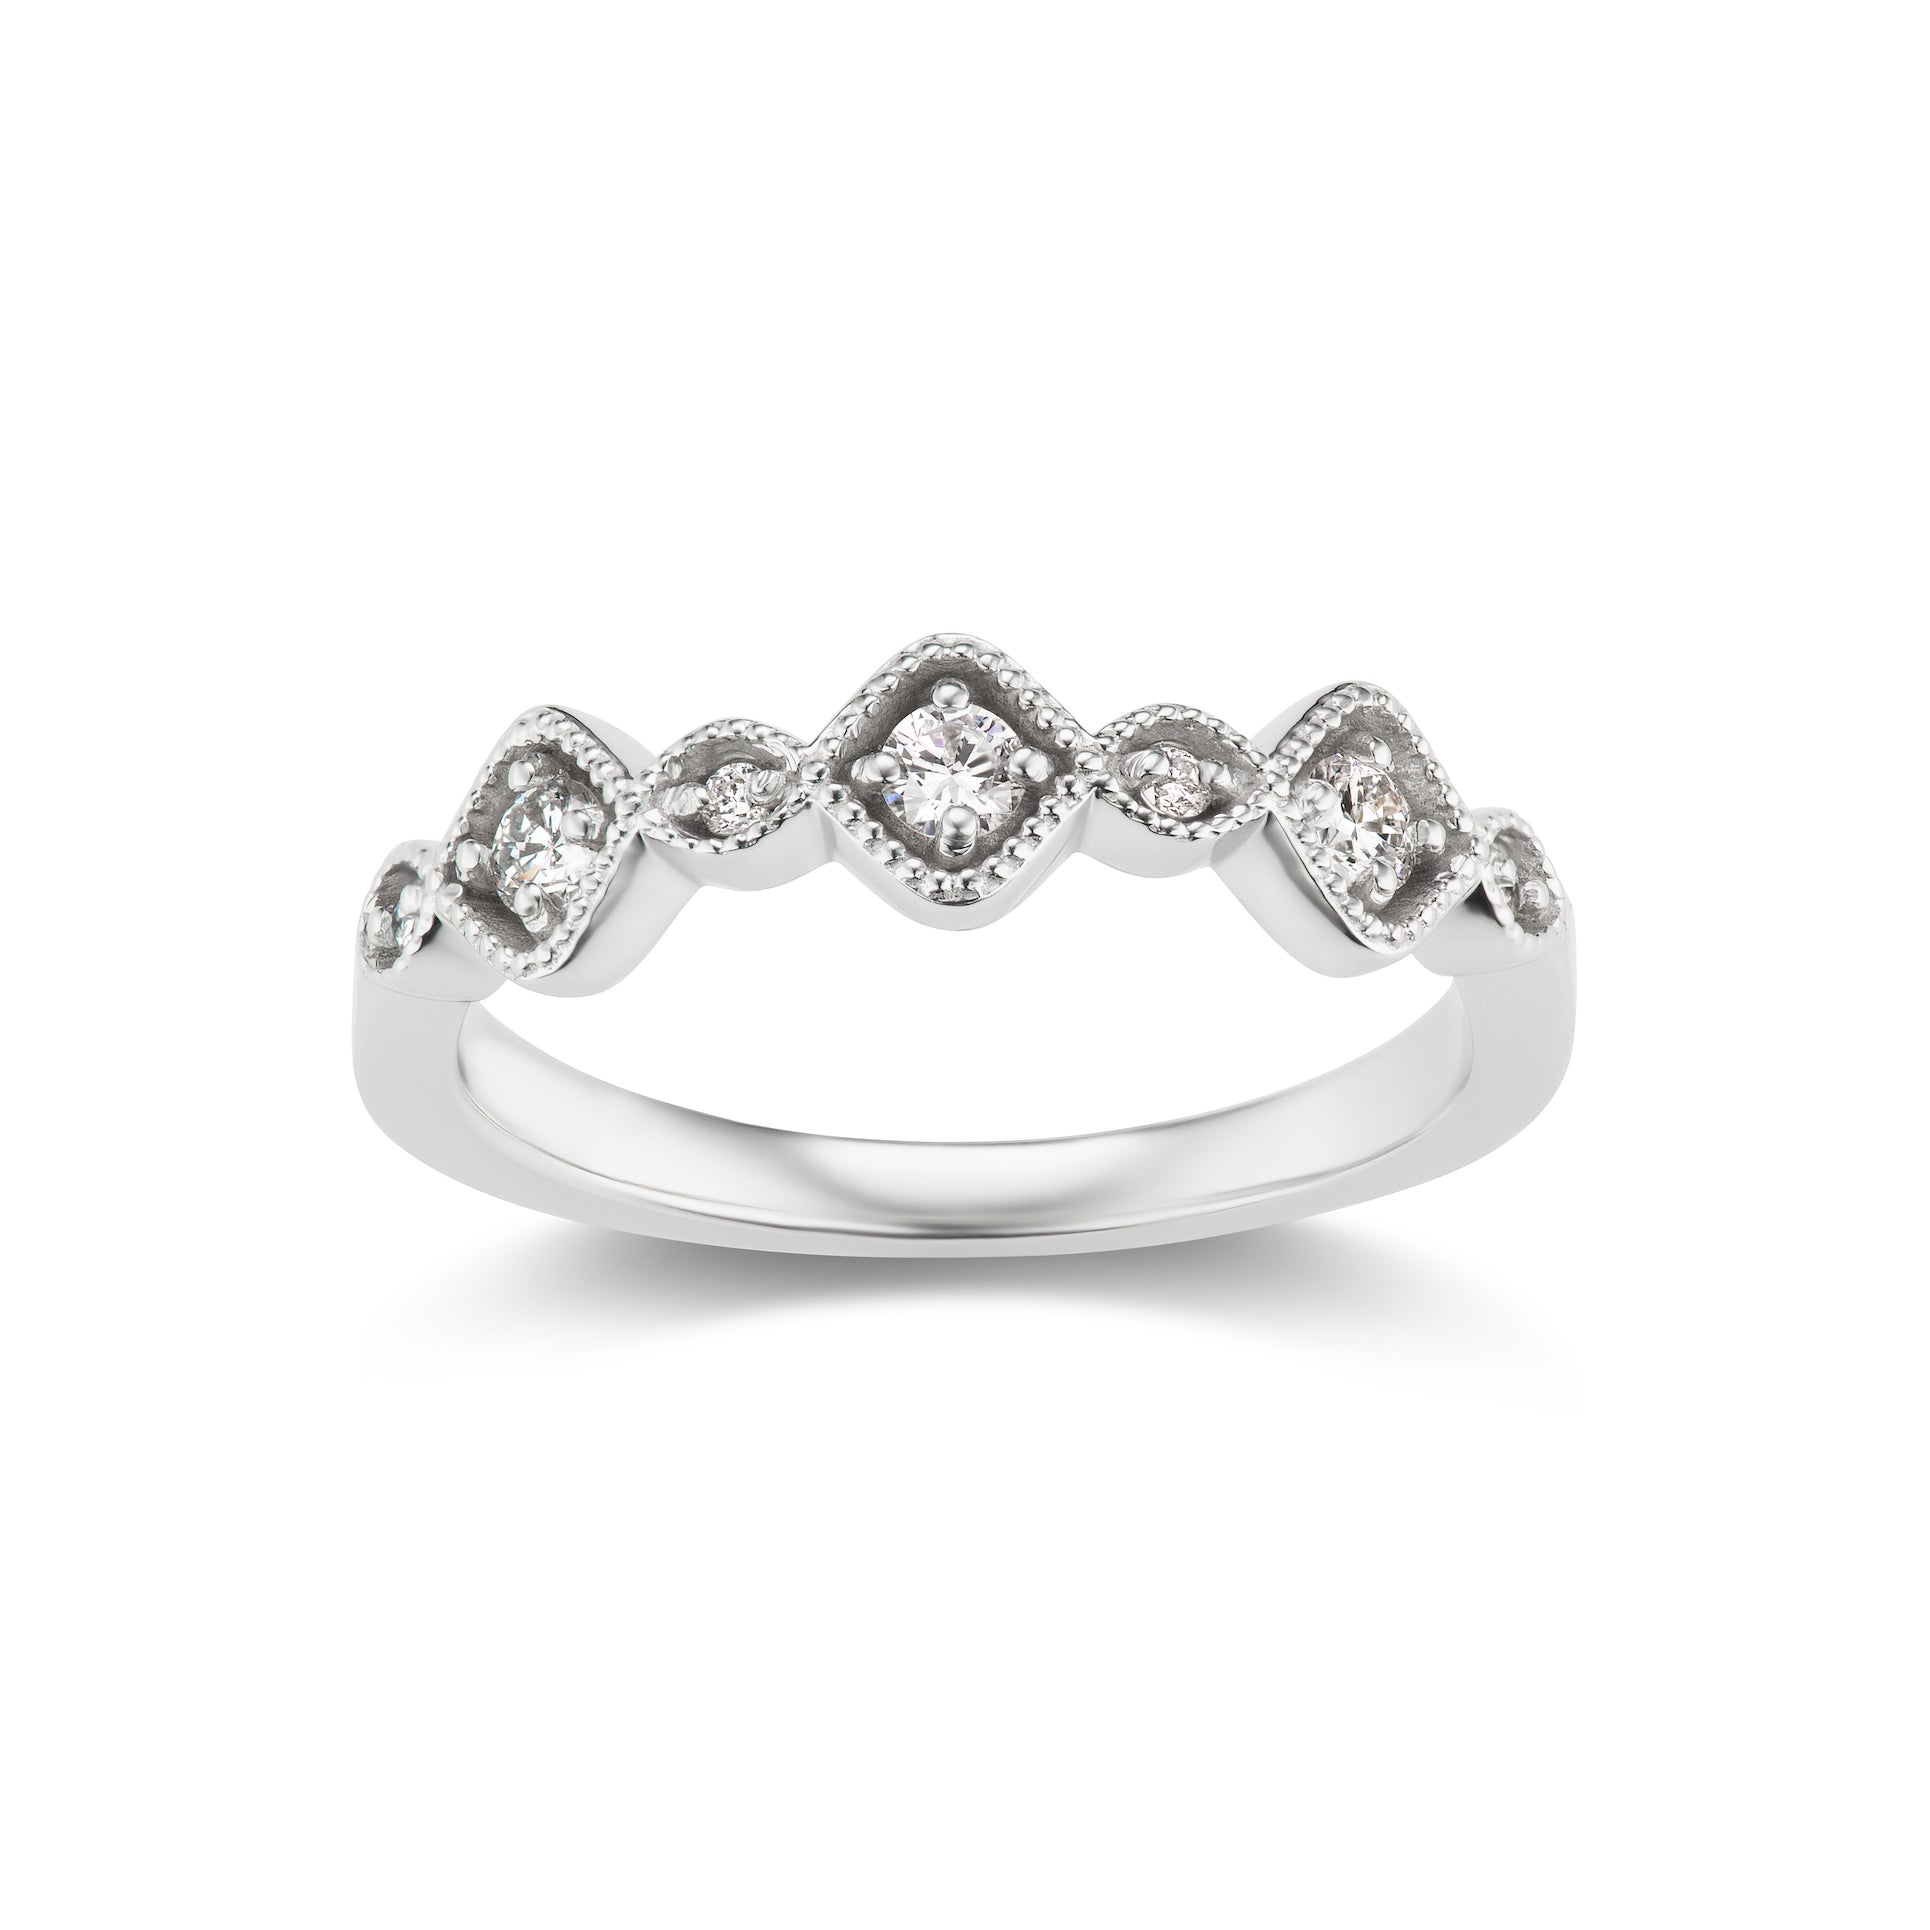 Pulsar Band Ring in White Gold (0.25 Ct. tw.)